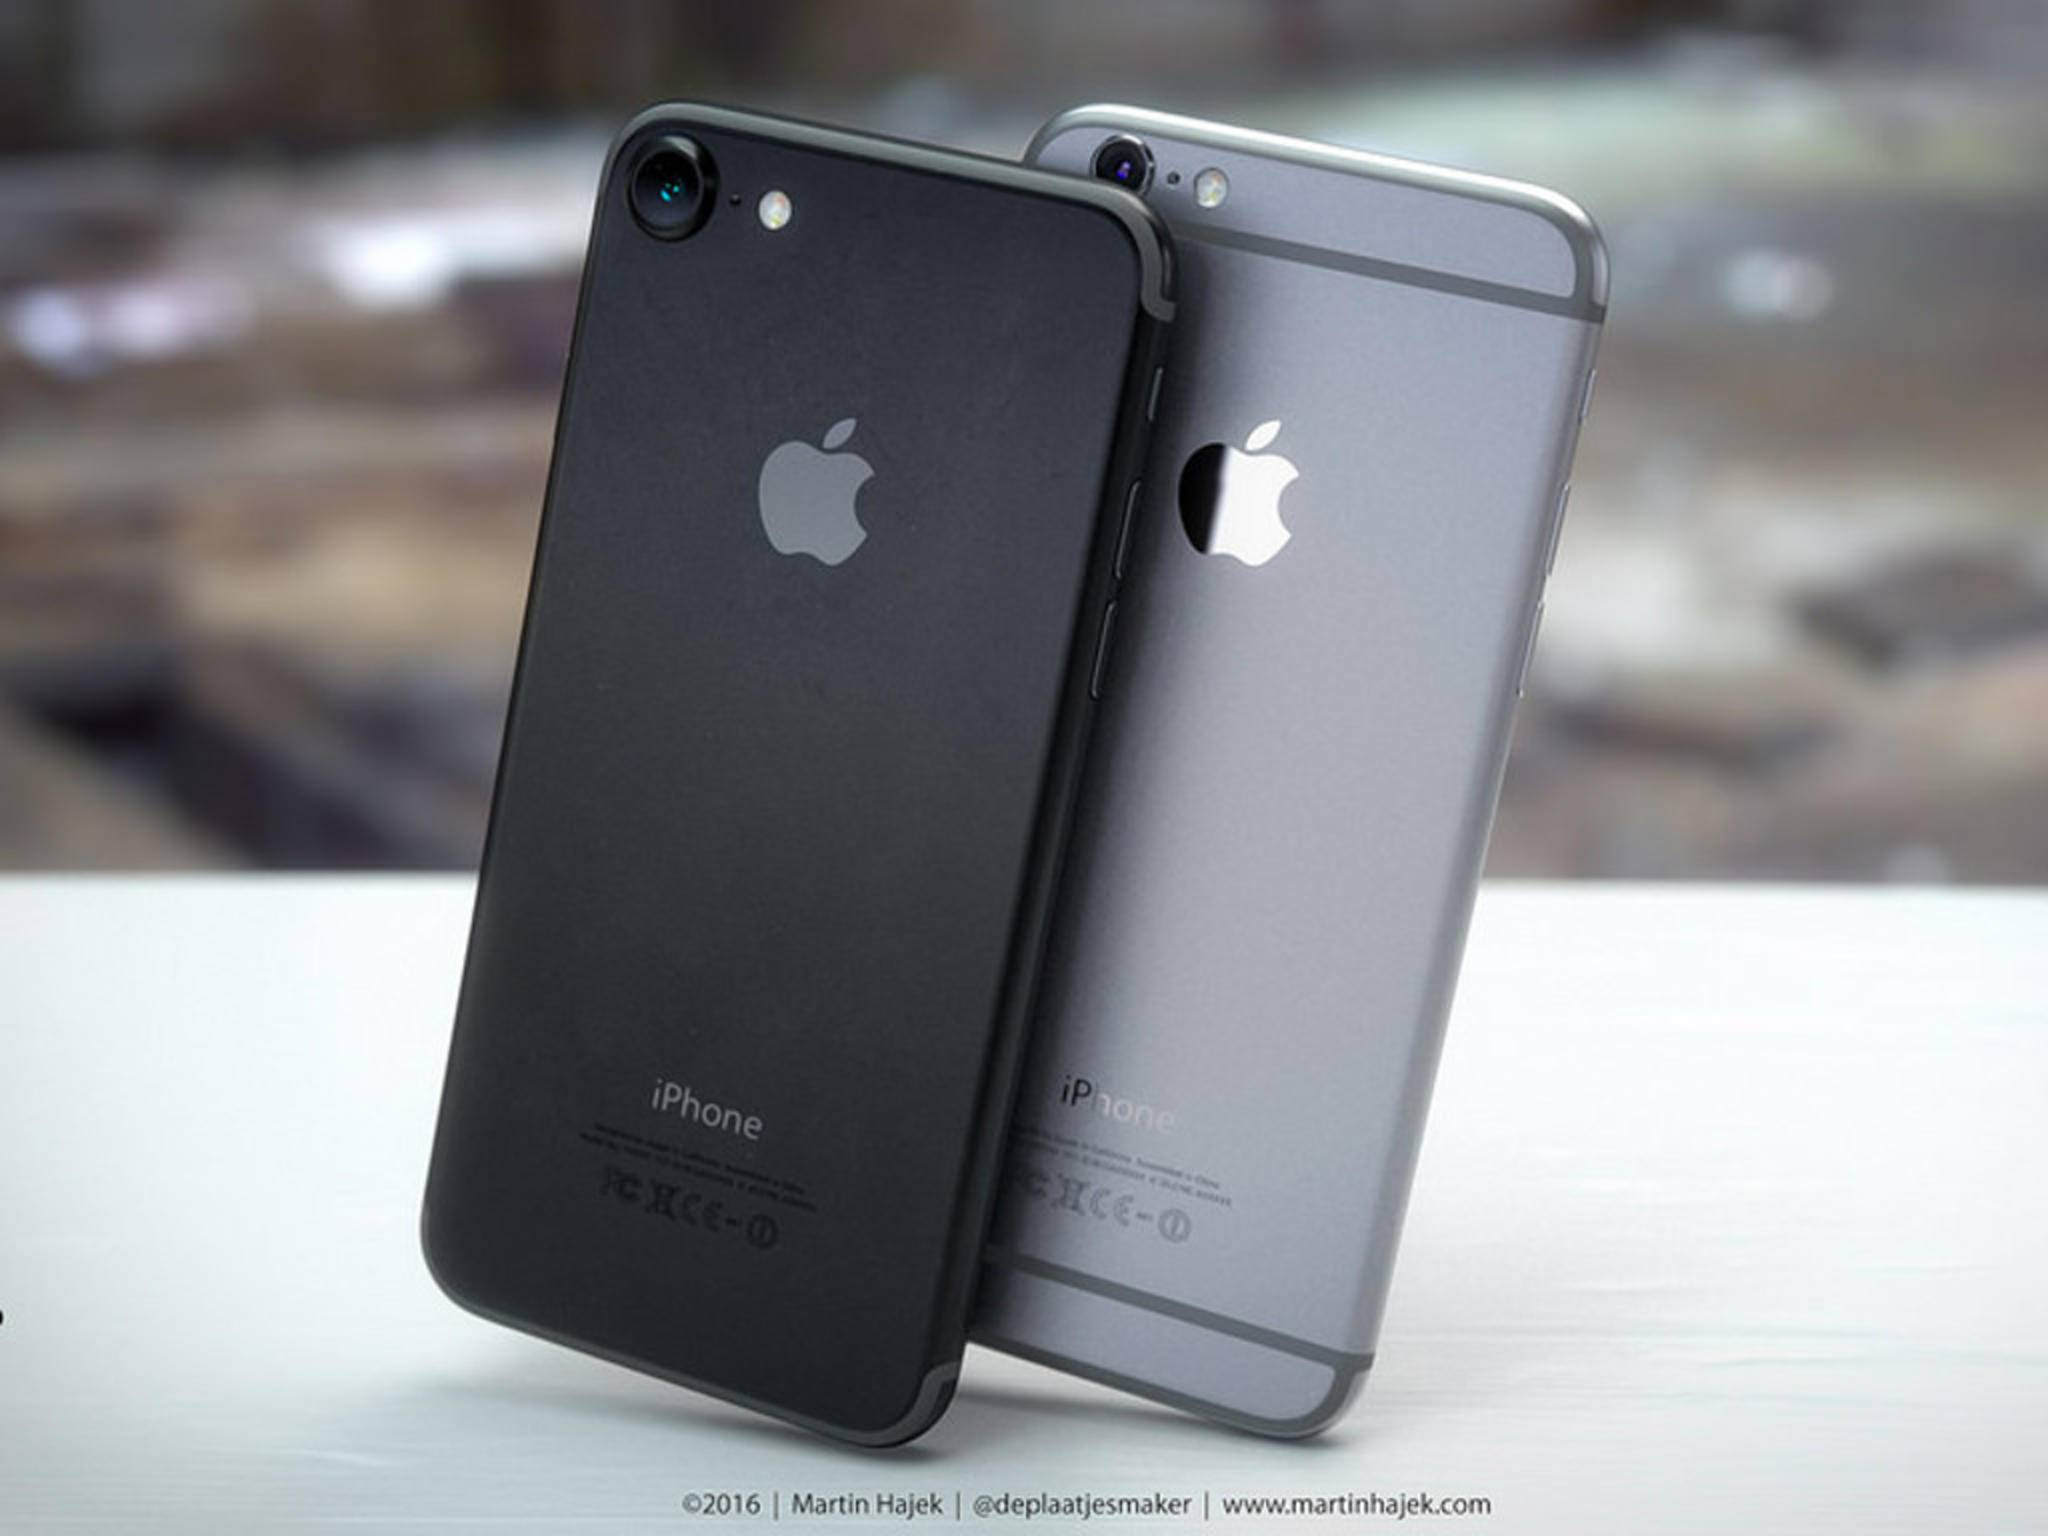 iPhone7: Kommt nun Space Black anstatt Deep blue?